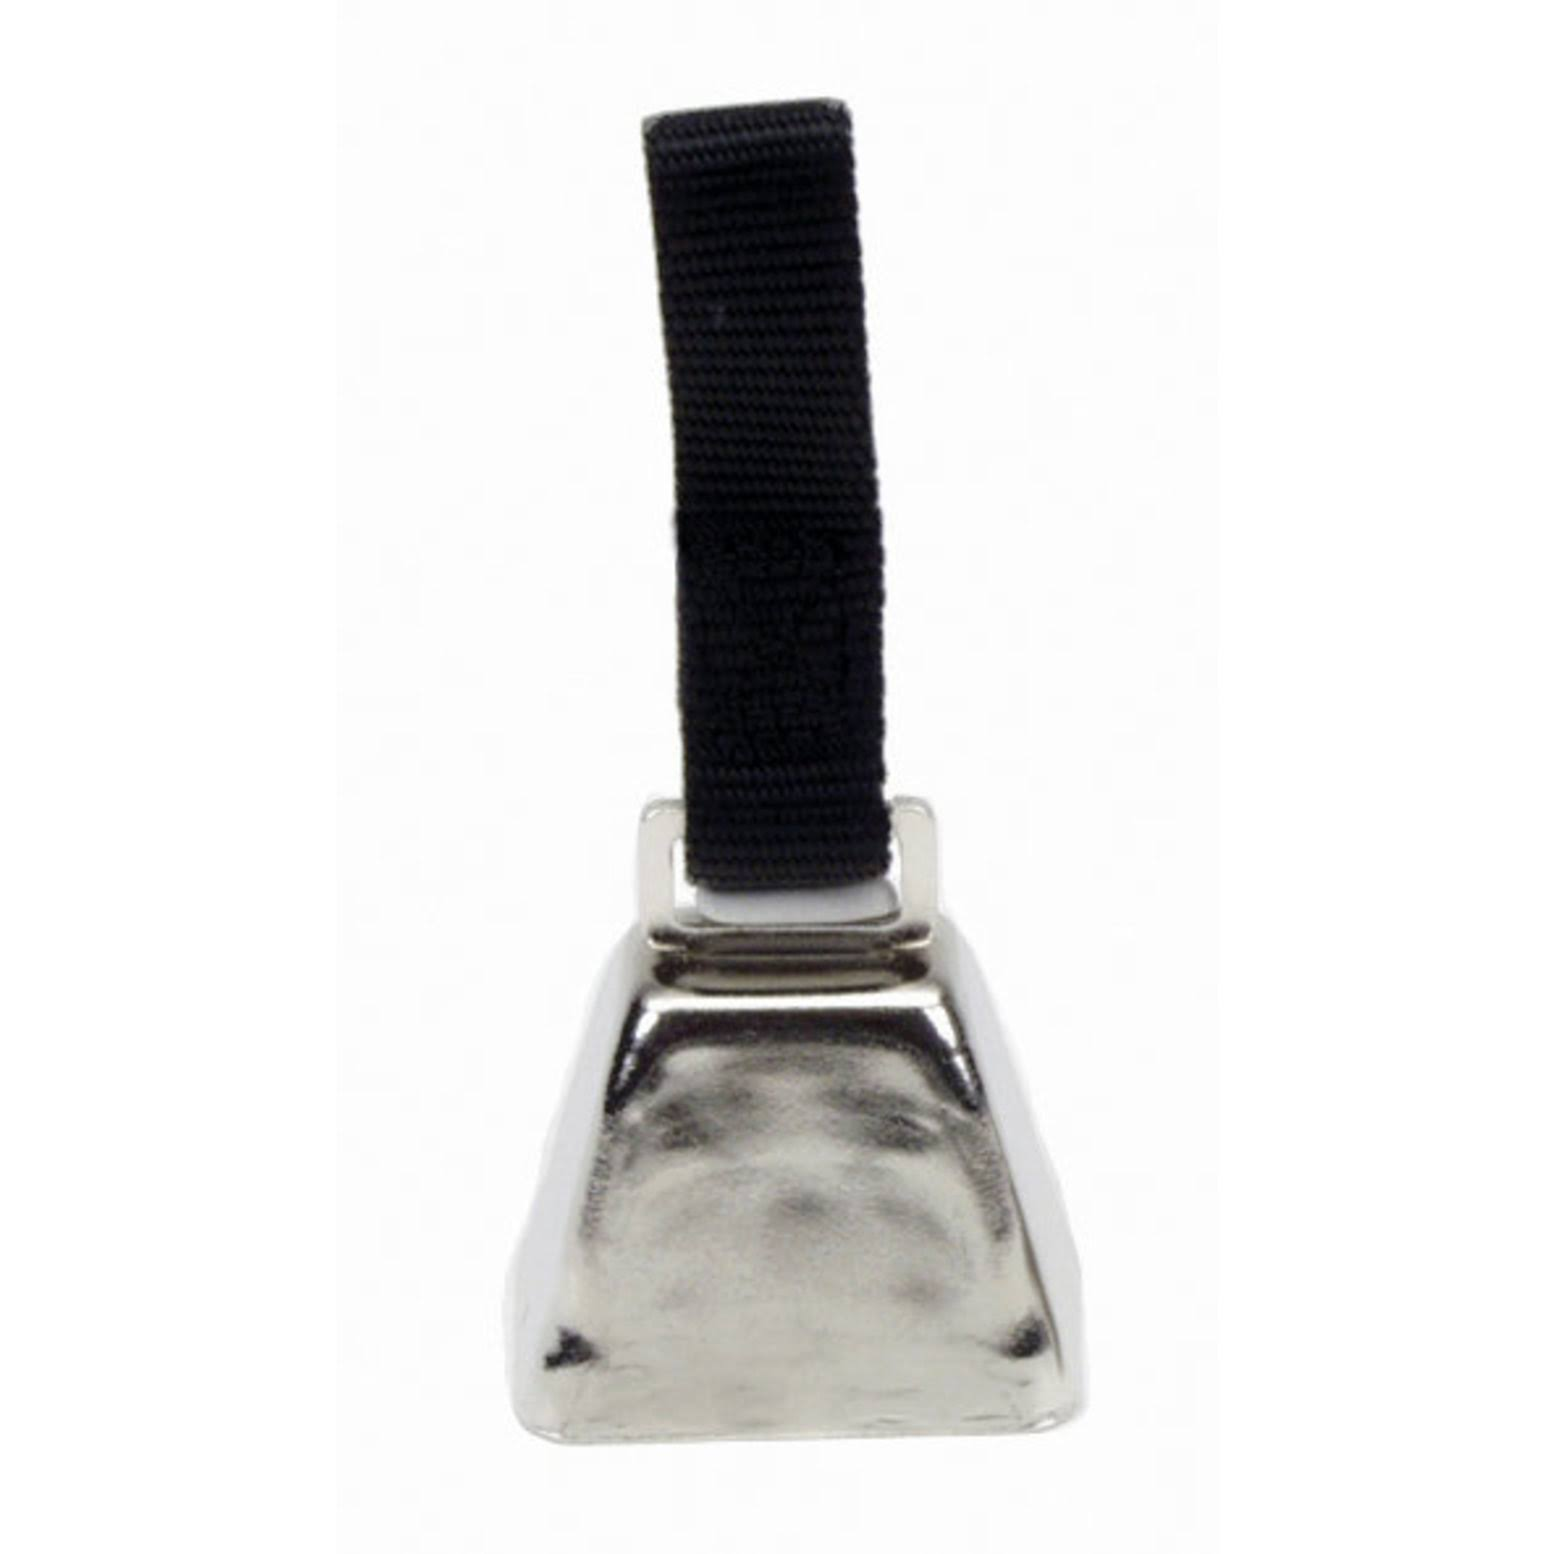 Coastal Pet Dog Training Nickel Cow Bell - with Nylon Strap, Small